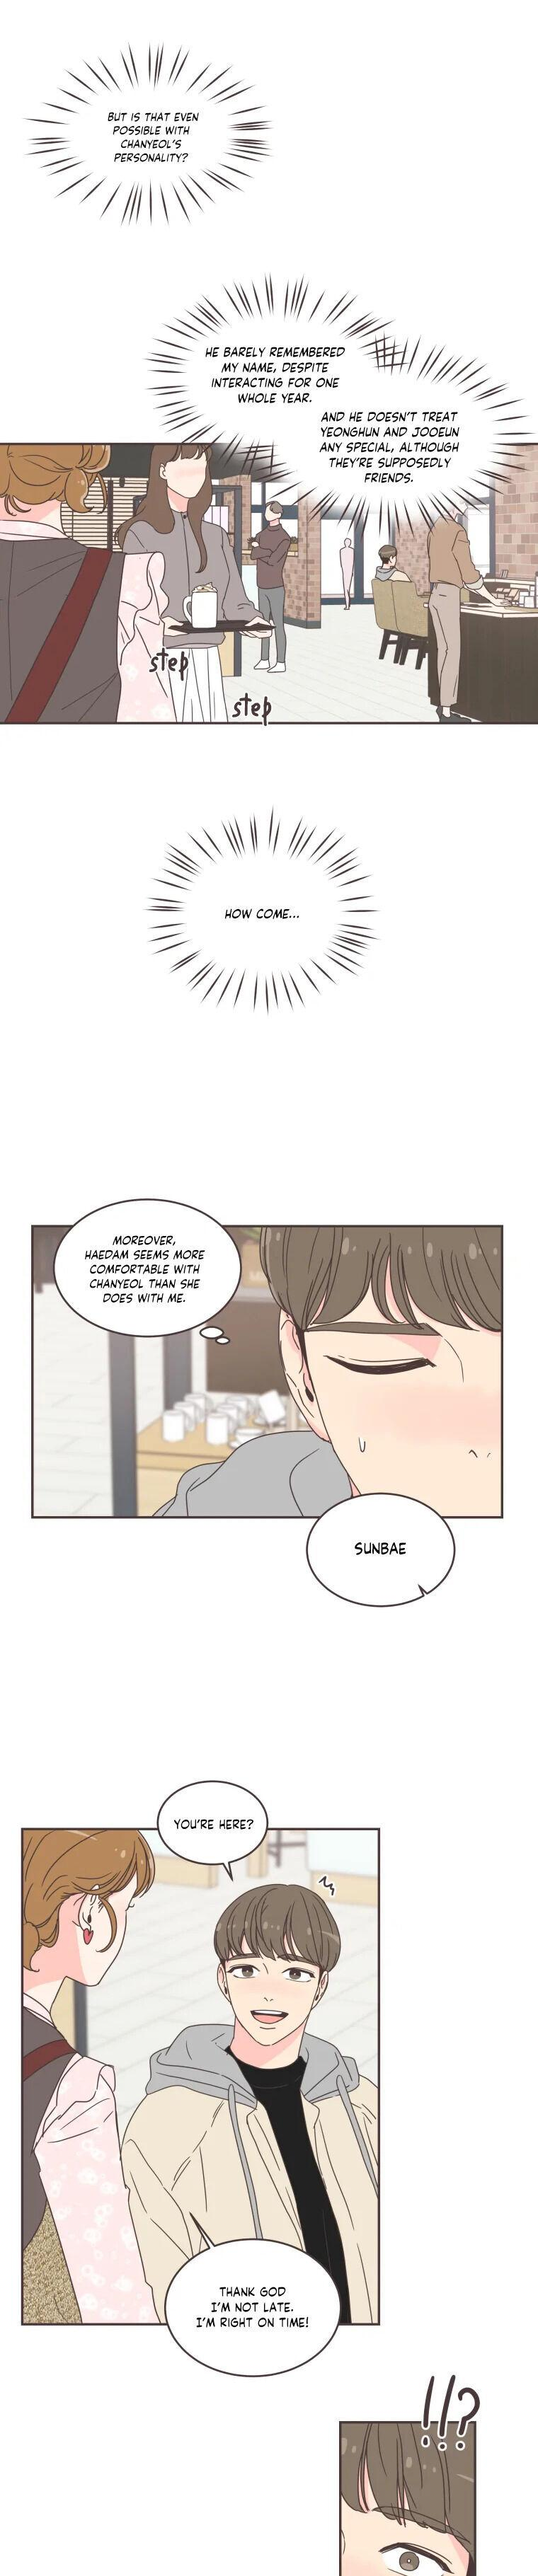 She's My Type - chapter 43 - #3